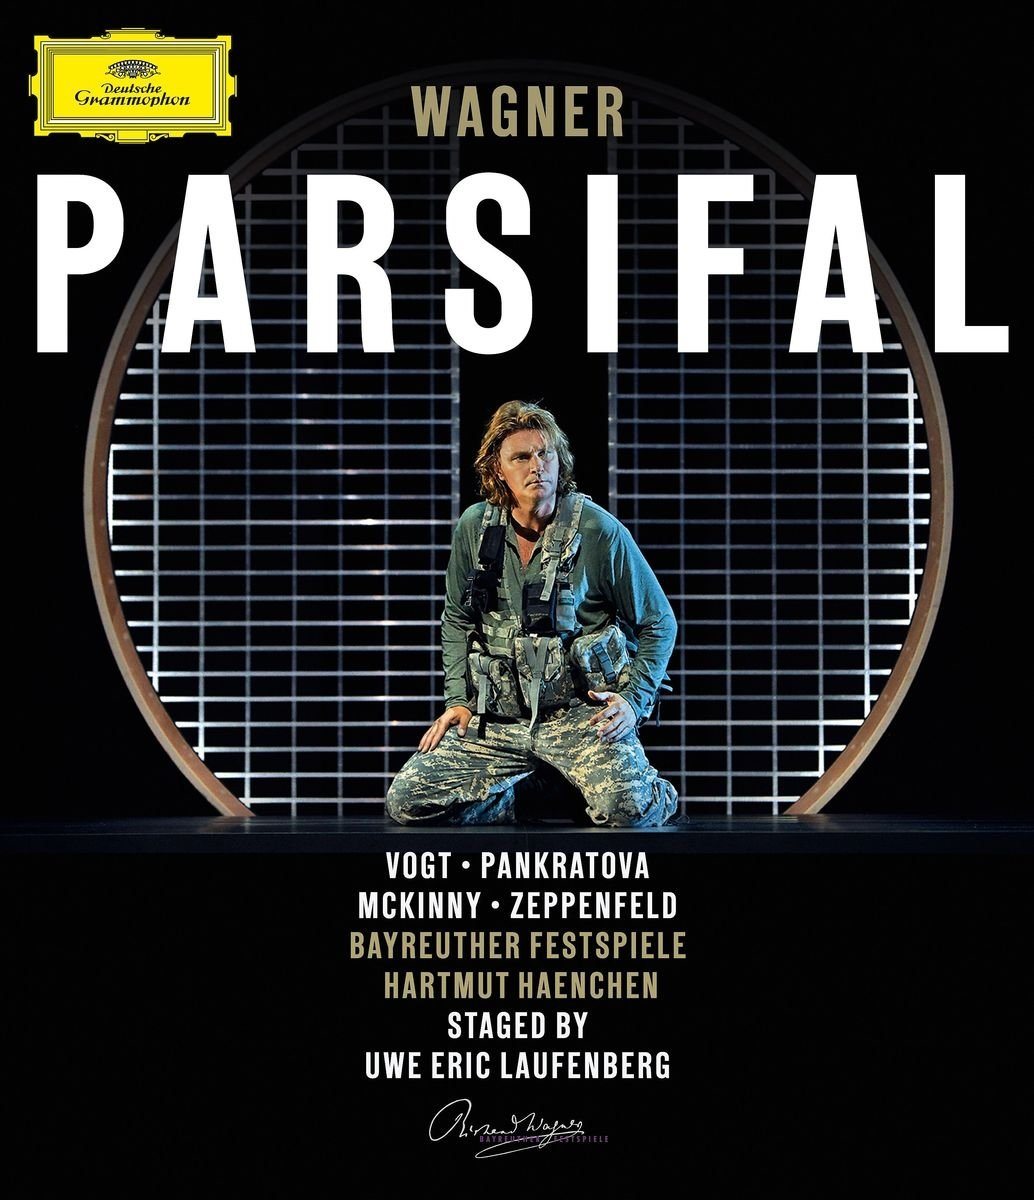 Wagner - Parsifal (3) - Page 12 71rpzady4xL._SL1200_